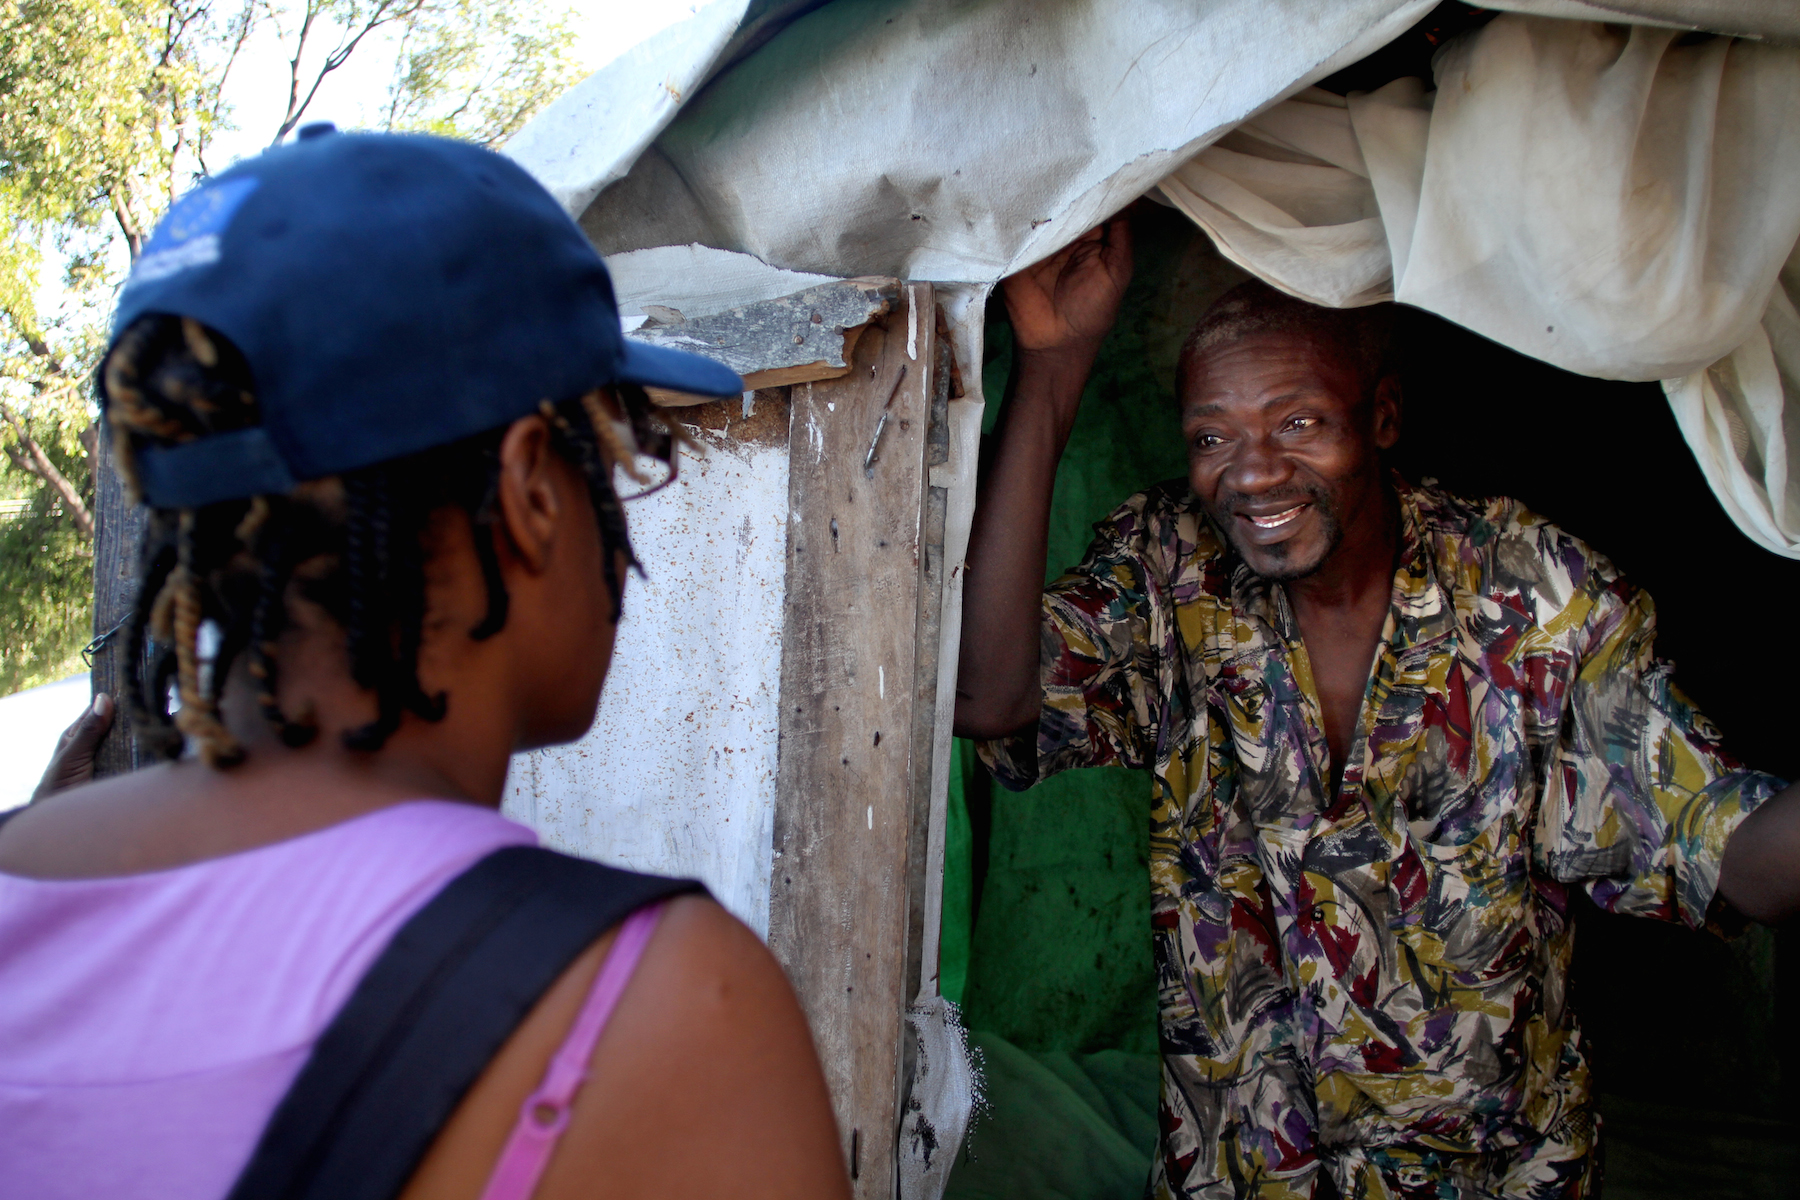 An IOM staff member speaks with Exelus Occima about relocation from his tent home in the Acra 2 camp. The former taxi driver lost his leg in an accident and had difficulties finding a handicap-accessible home.